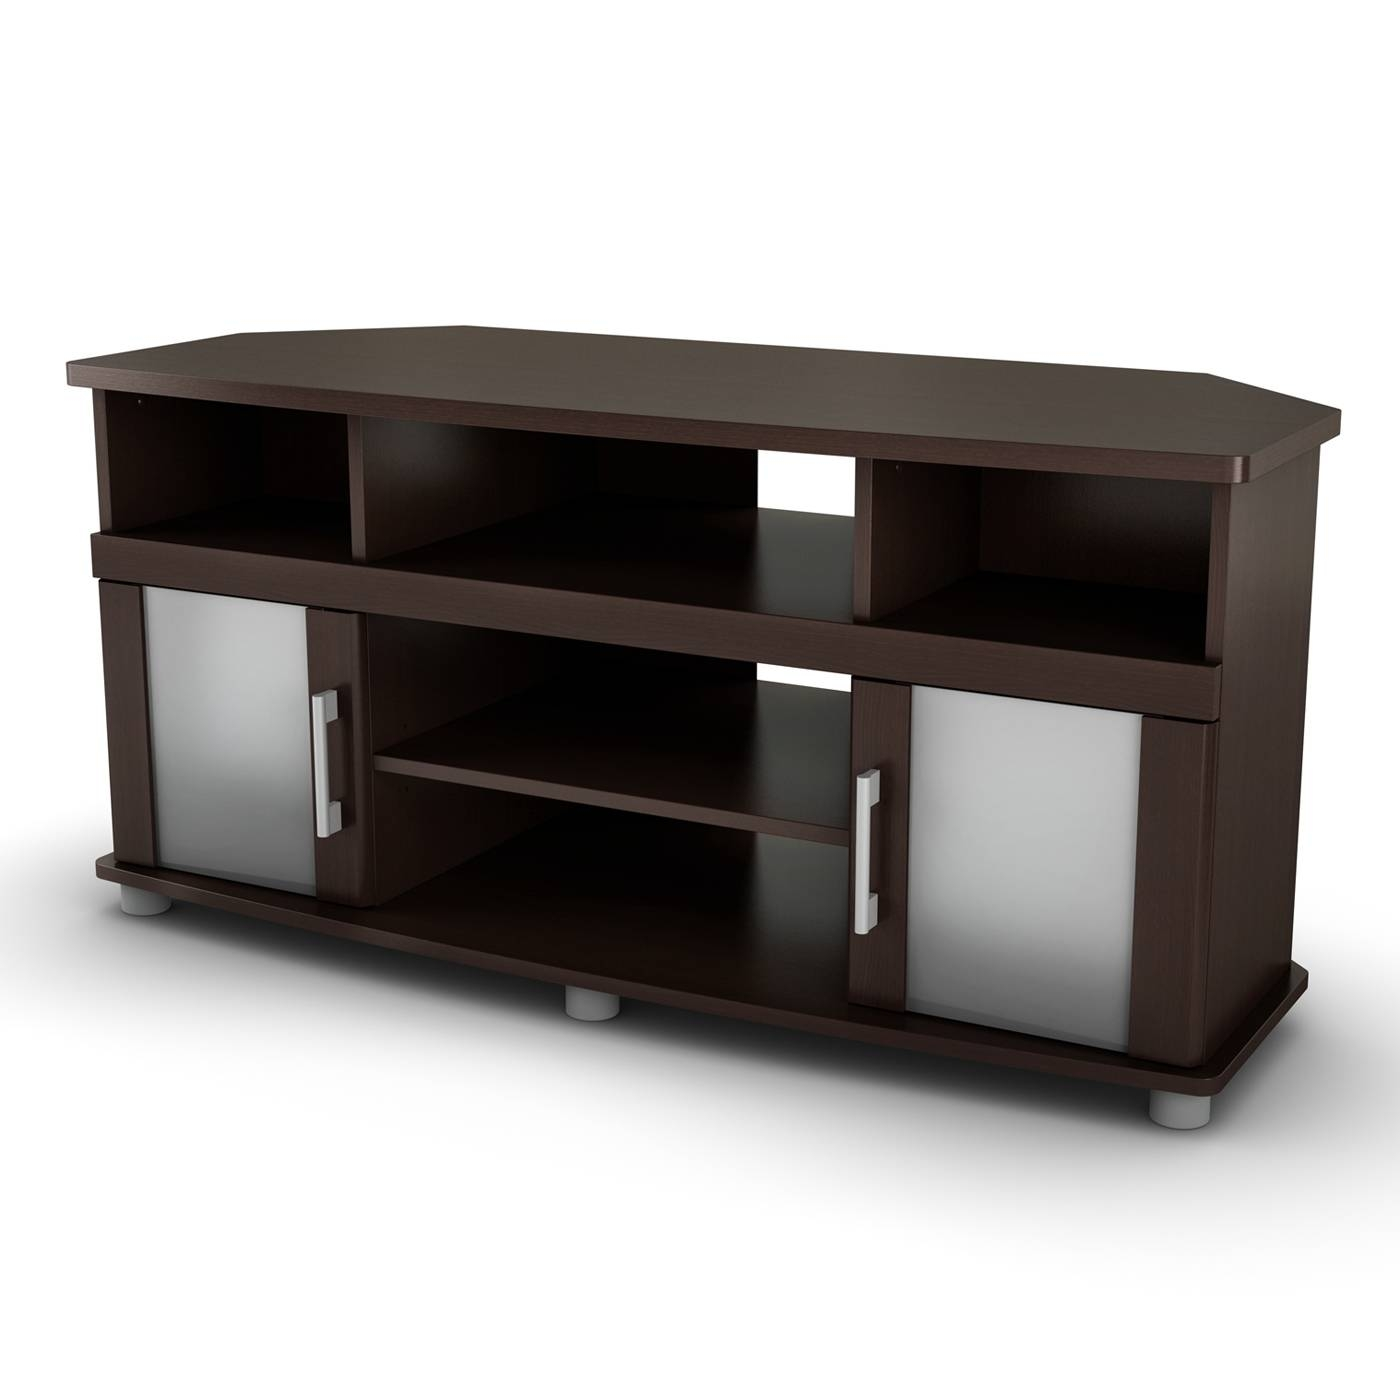 South Shore Furniture City Life Corner Tv Stand | Lowe's Canada Throughout Tv Stands For Corner (View 10 of 15)